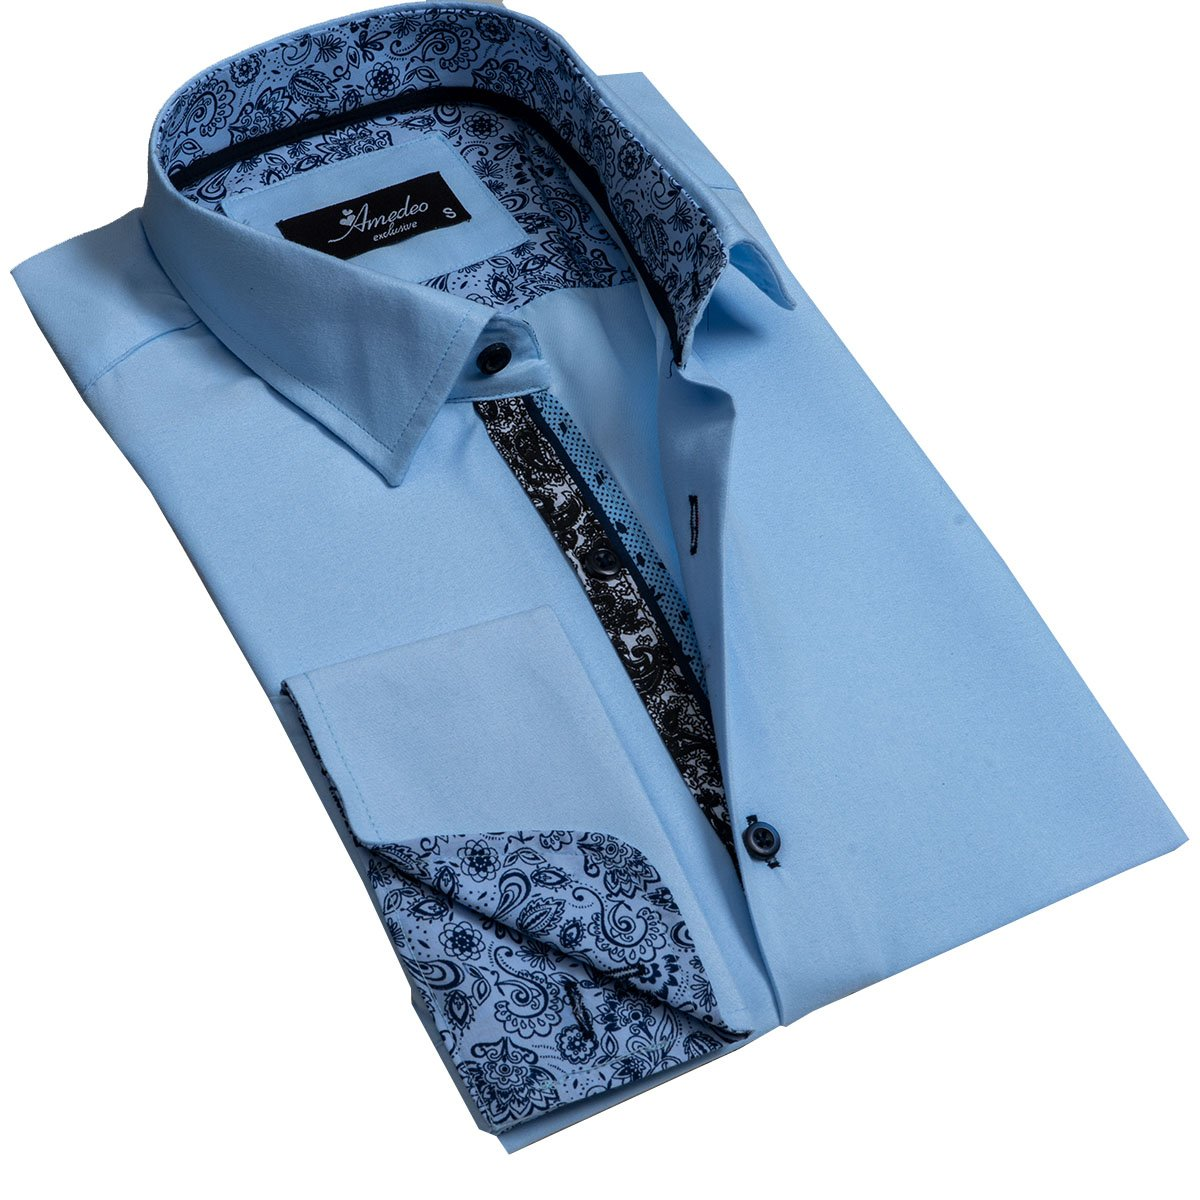 Solid Light Blue Mens Slim Fit French Cuff Dress Shirts with Cufflink Holes - Casual and Formal - Amedeo Exclusive